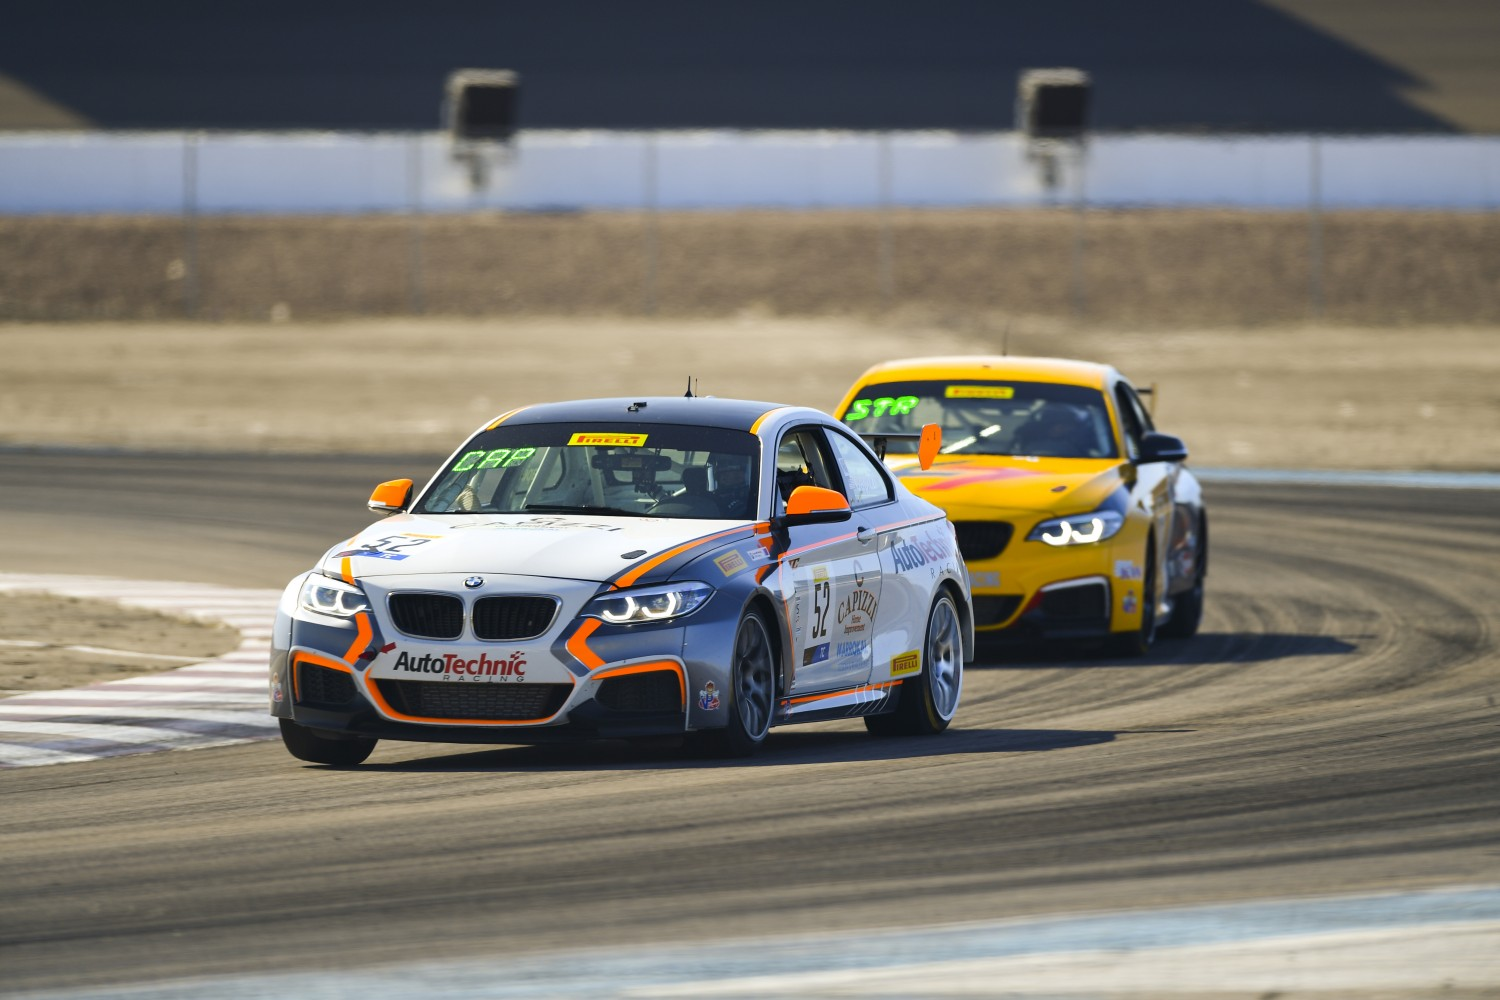 #52 BMW M240iR Cup of Tom Capizzi  with Auto Technic Racing  2019 Blancpain GT World Challenge America - Las Vegas, Las Vegas NV | Gavin Baker/SRO